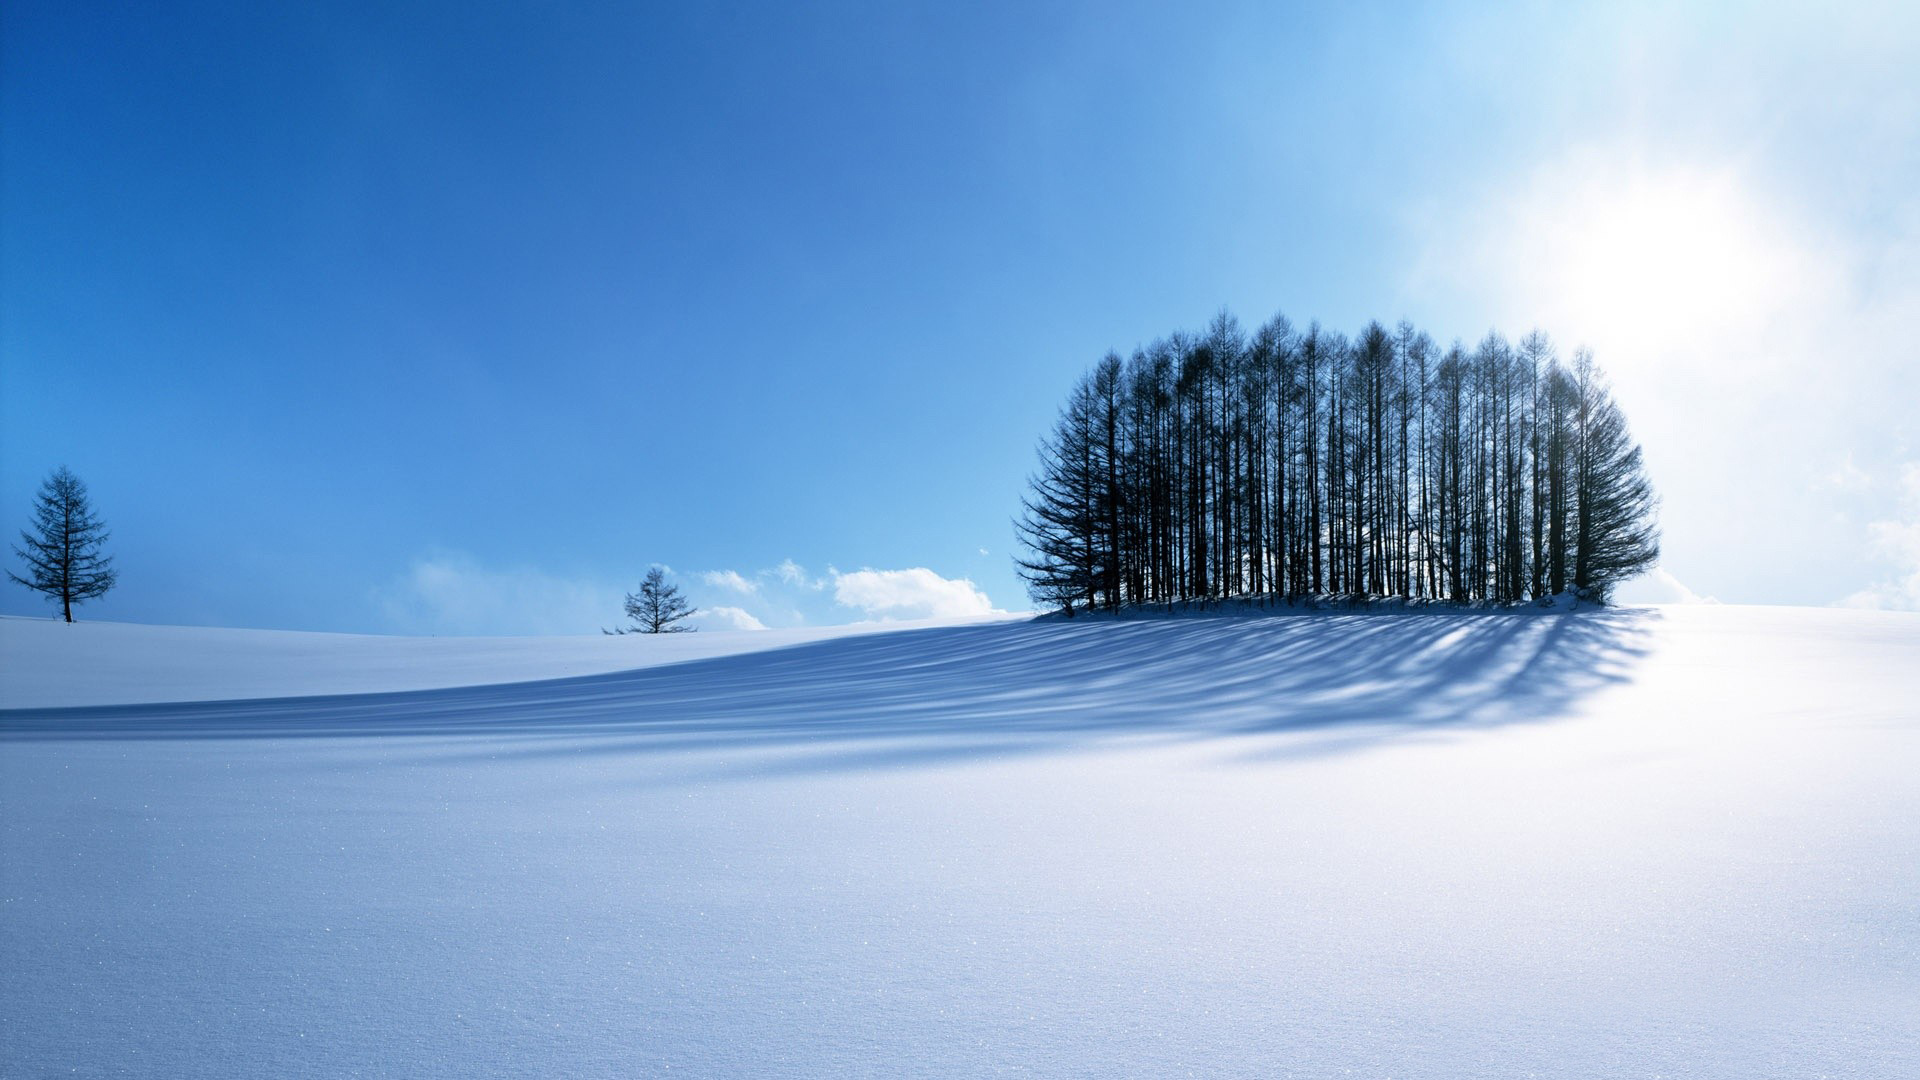 Winter Scenery 407.97 Kb